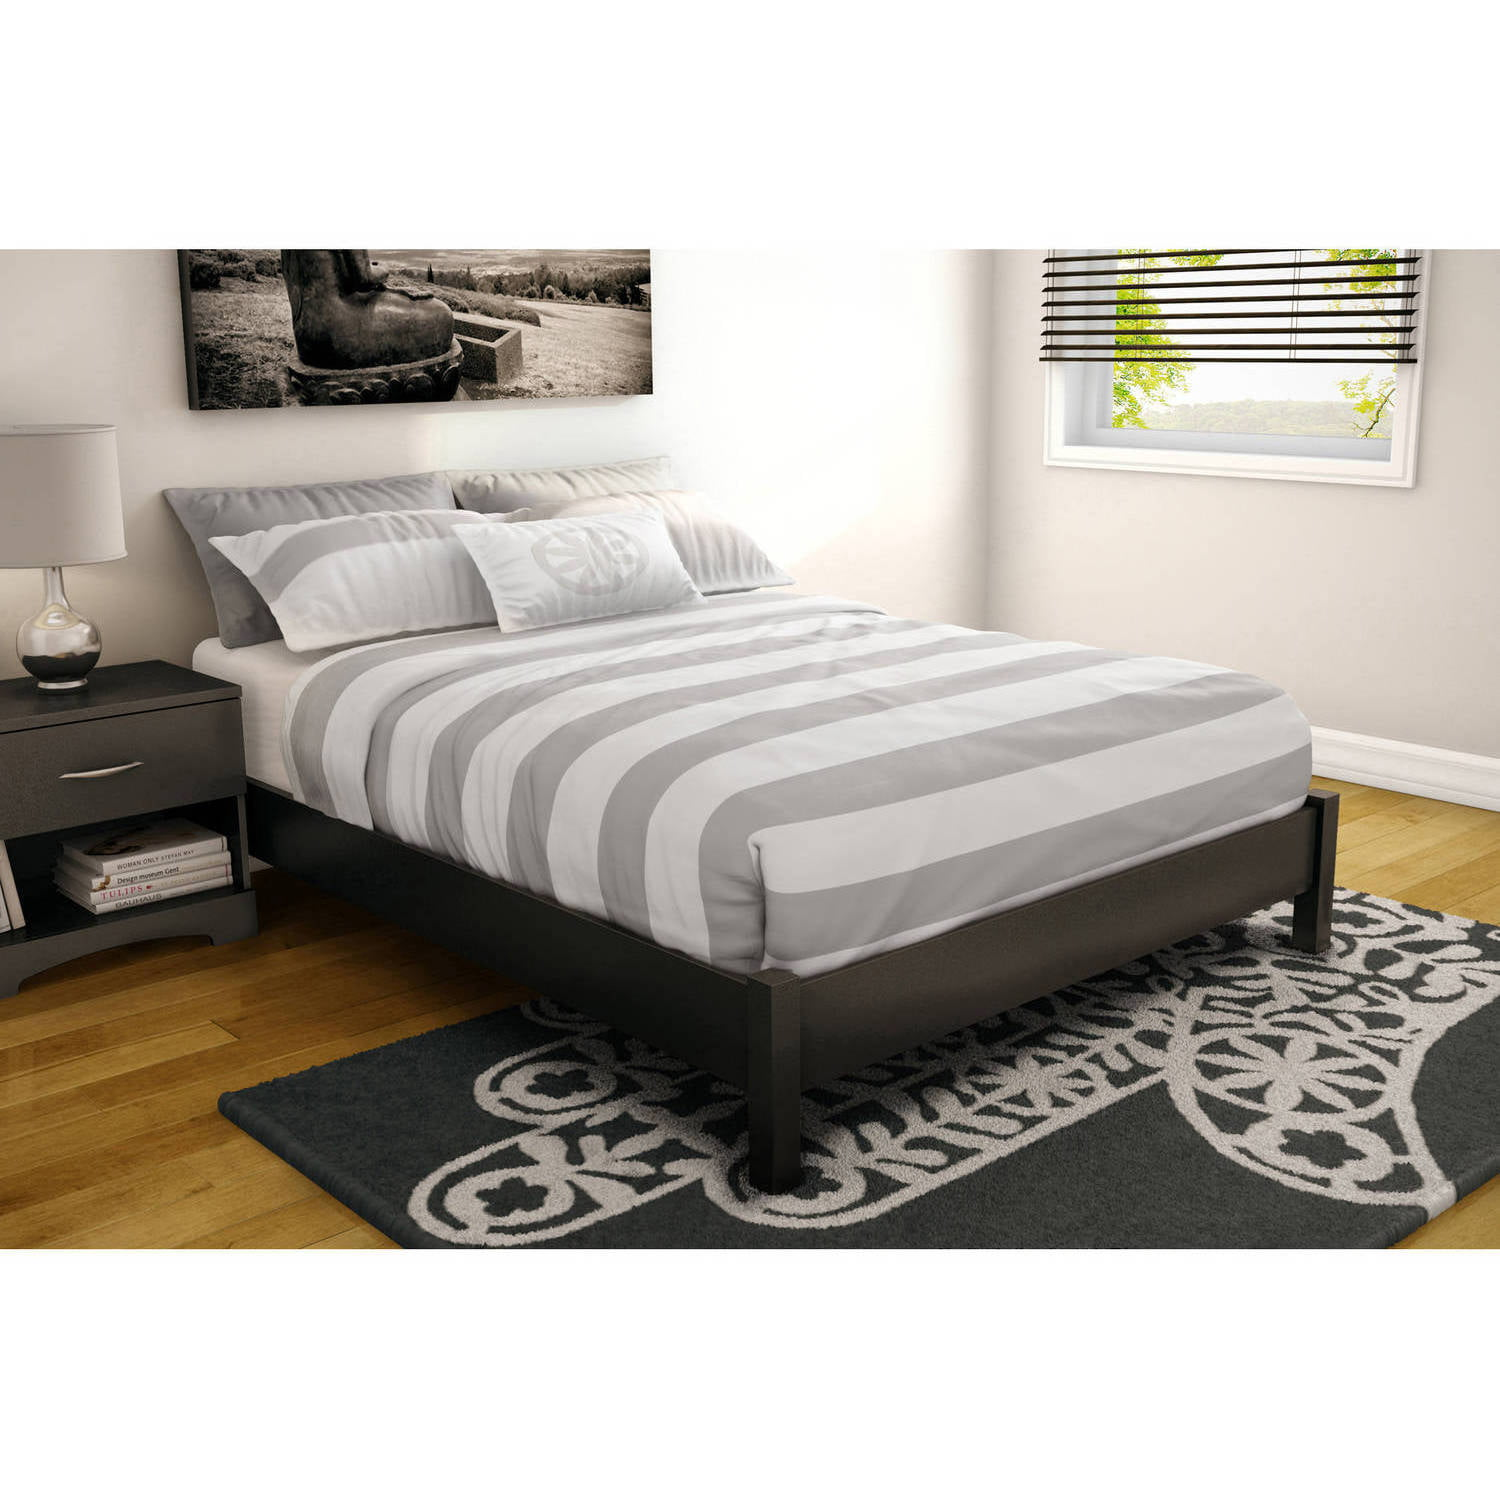 Premier Pia Metal Platform Bed Frame Queen with Bonus Base Wooden